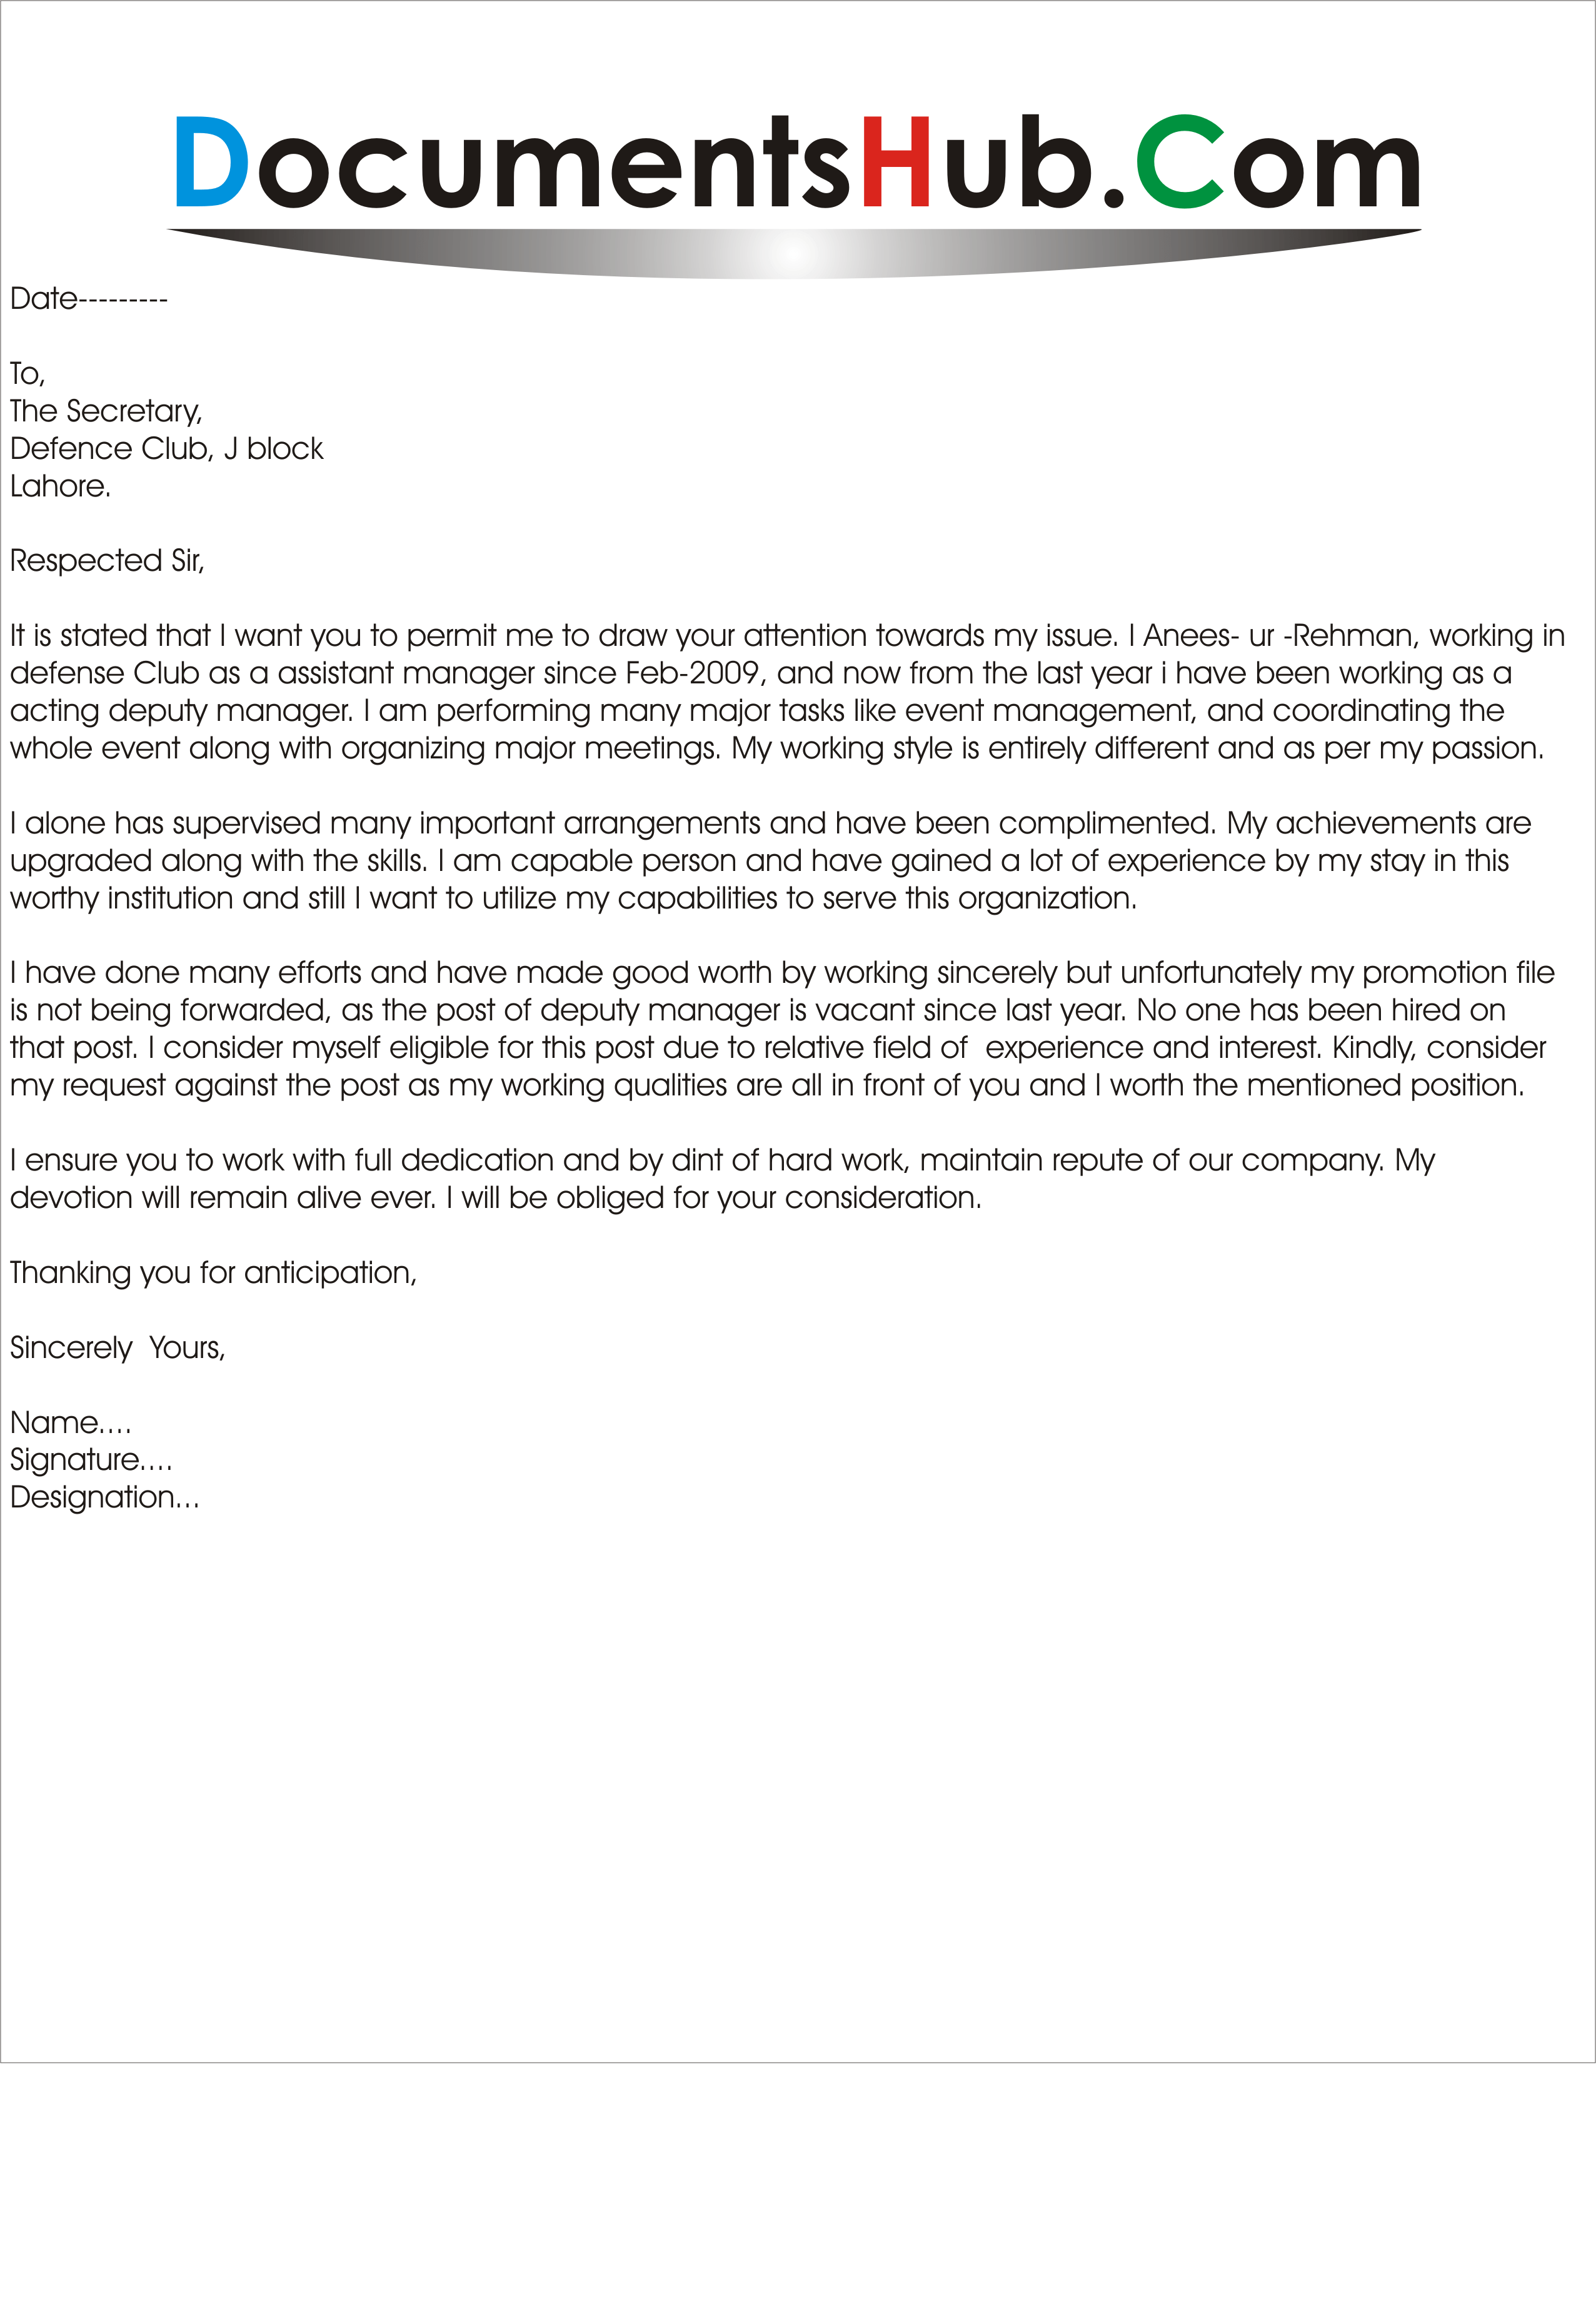 requesting promotion letter